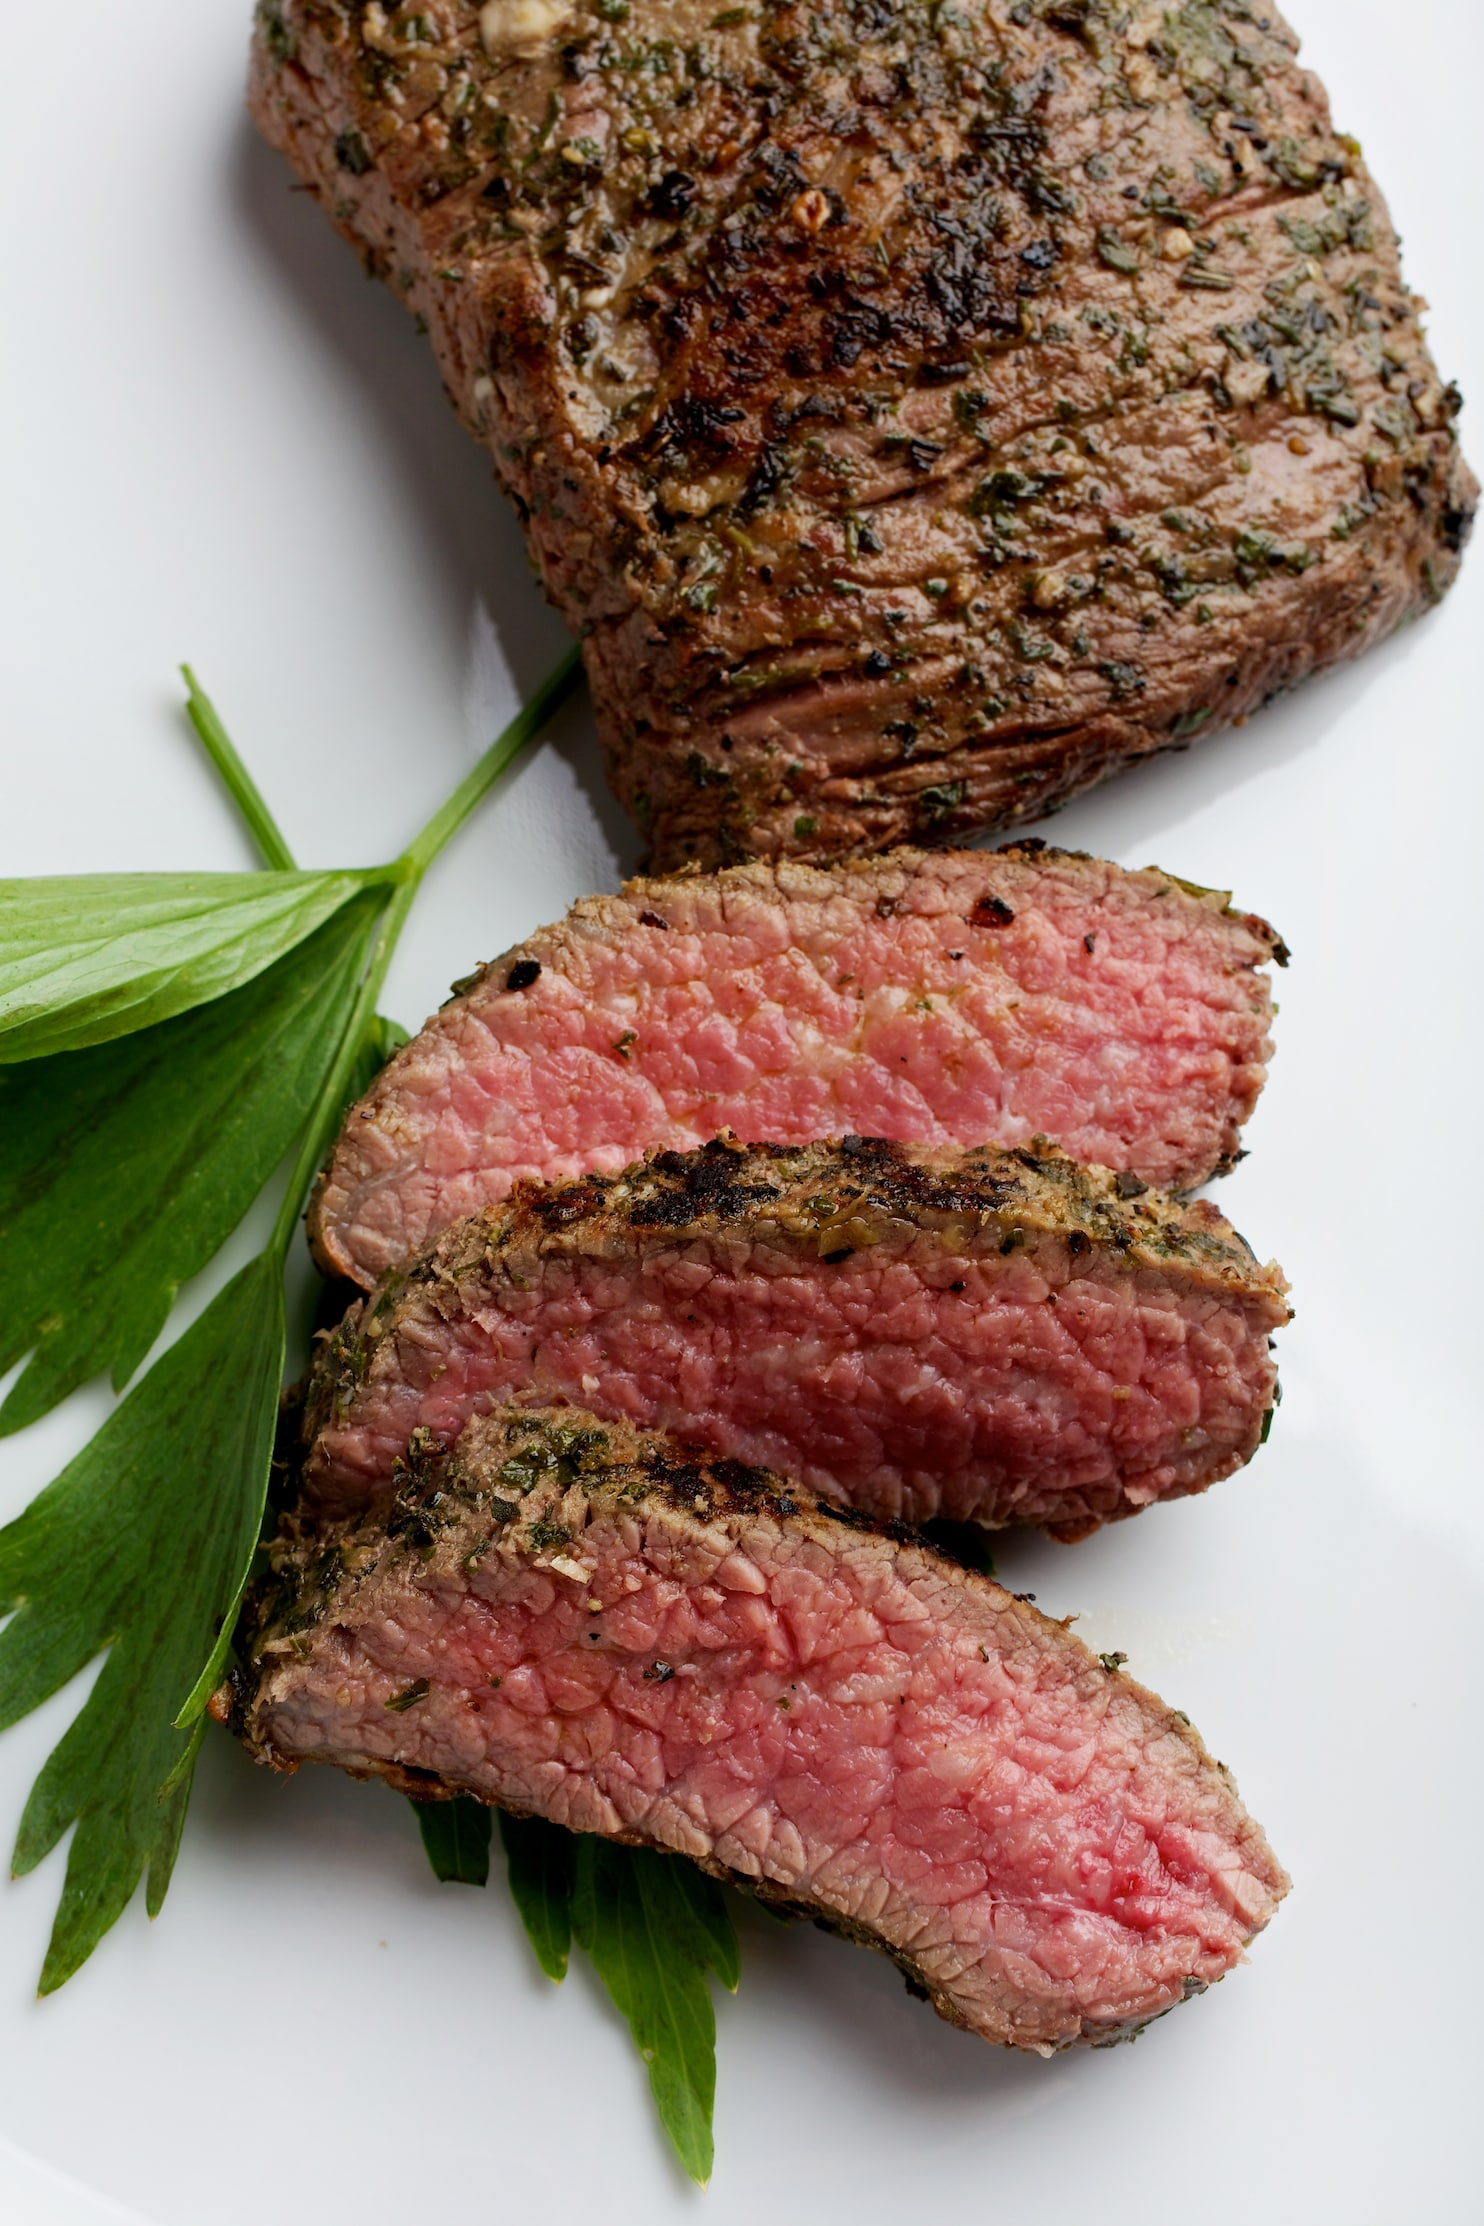 Healthy Snack Options Herb-marinated Rib-eye Cap Steaks - The Washington Post